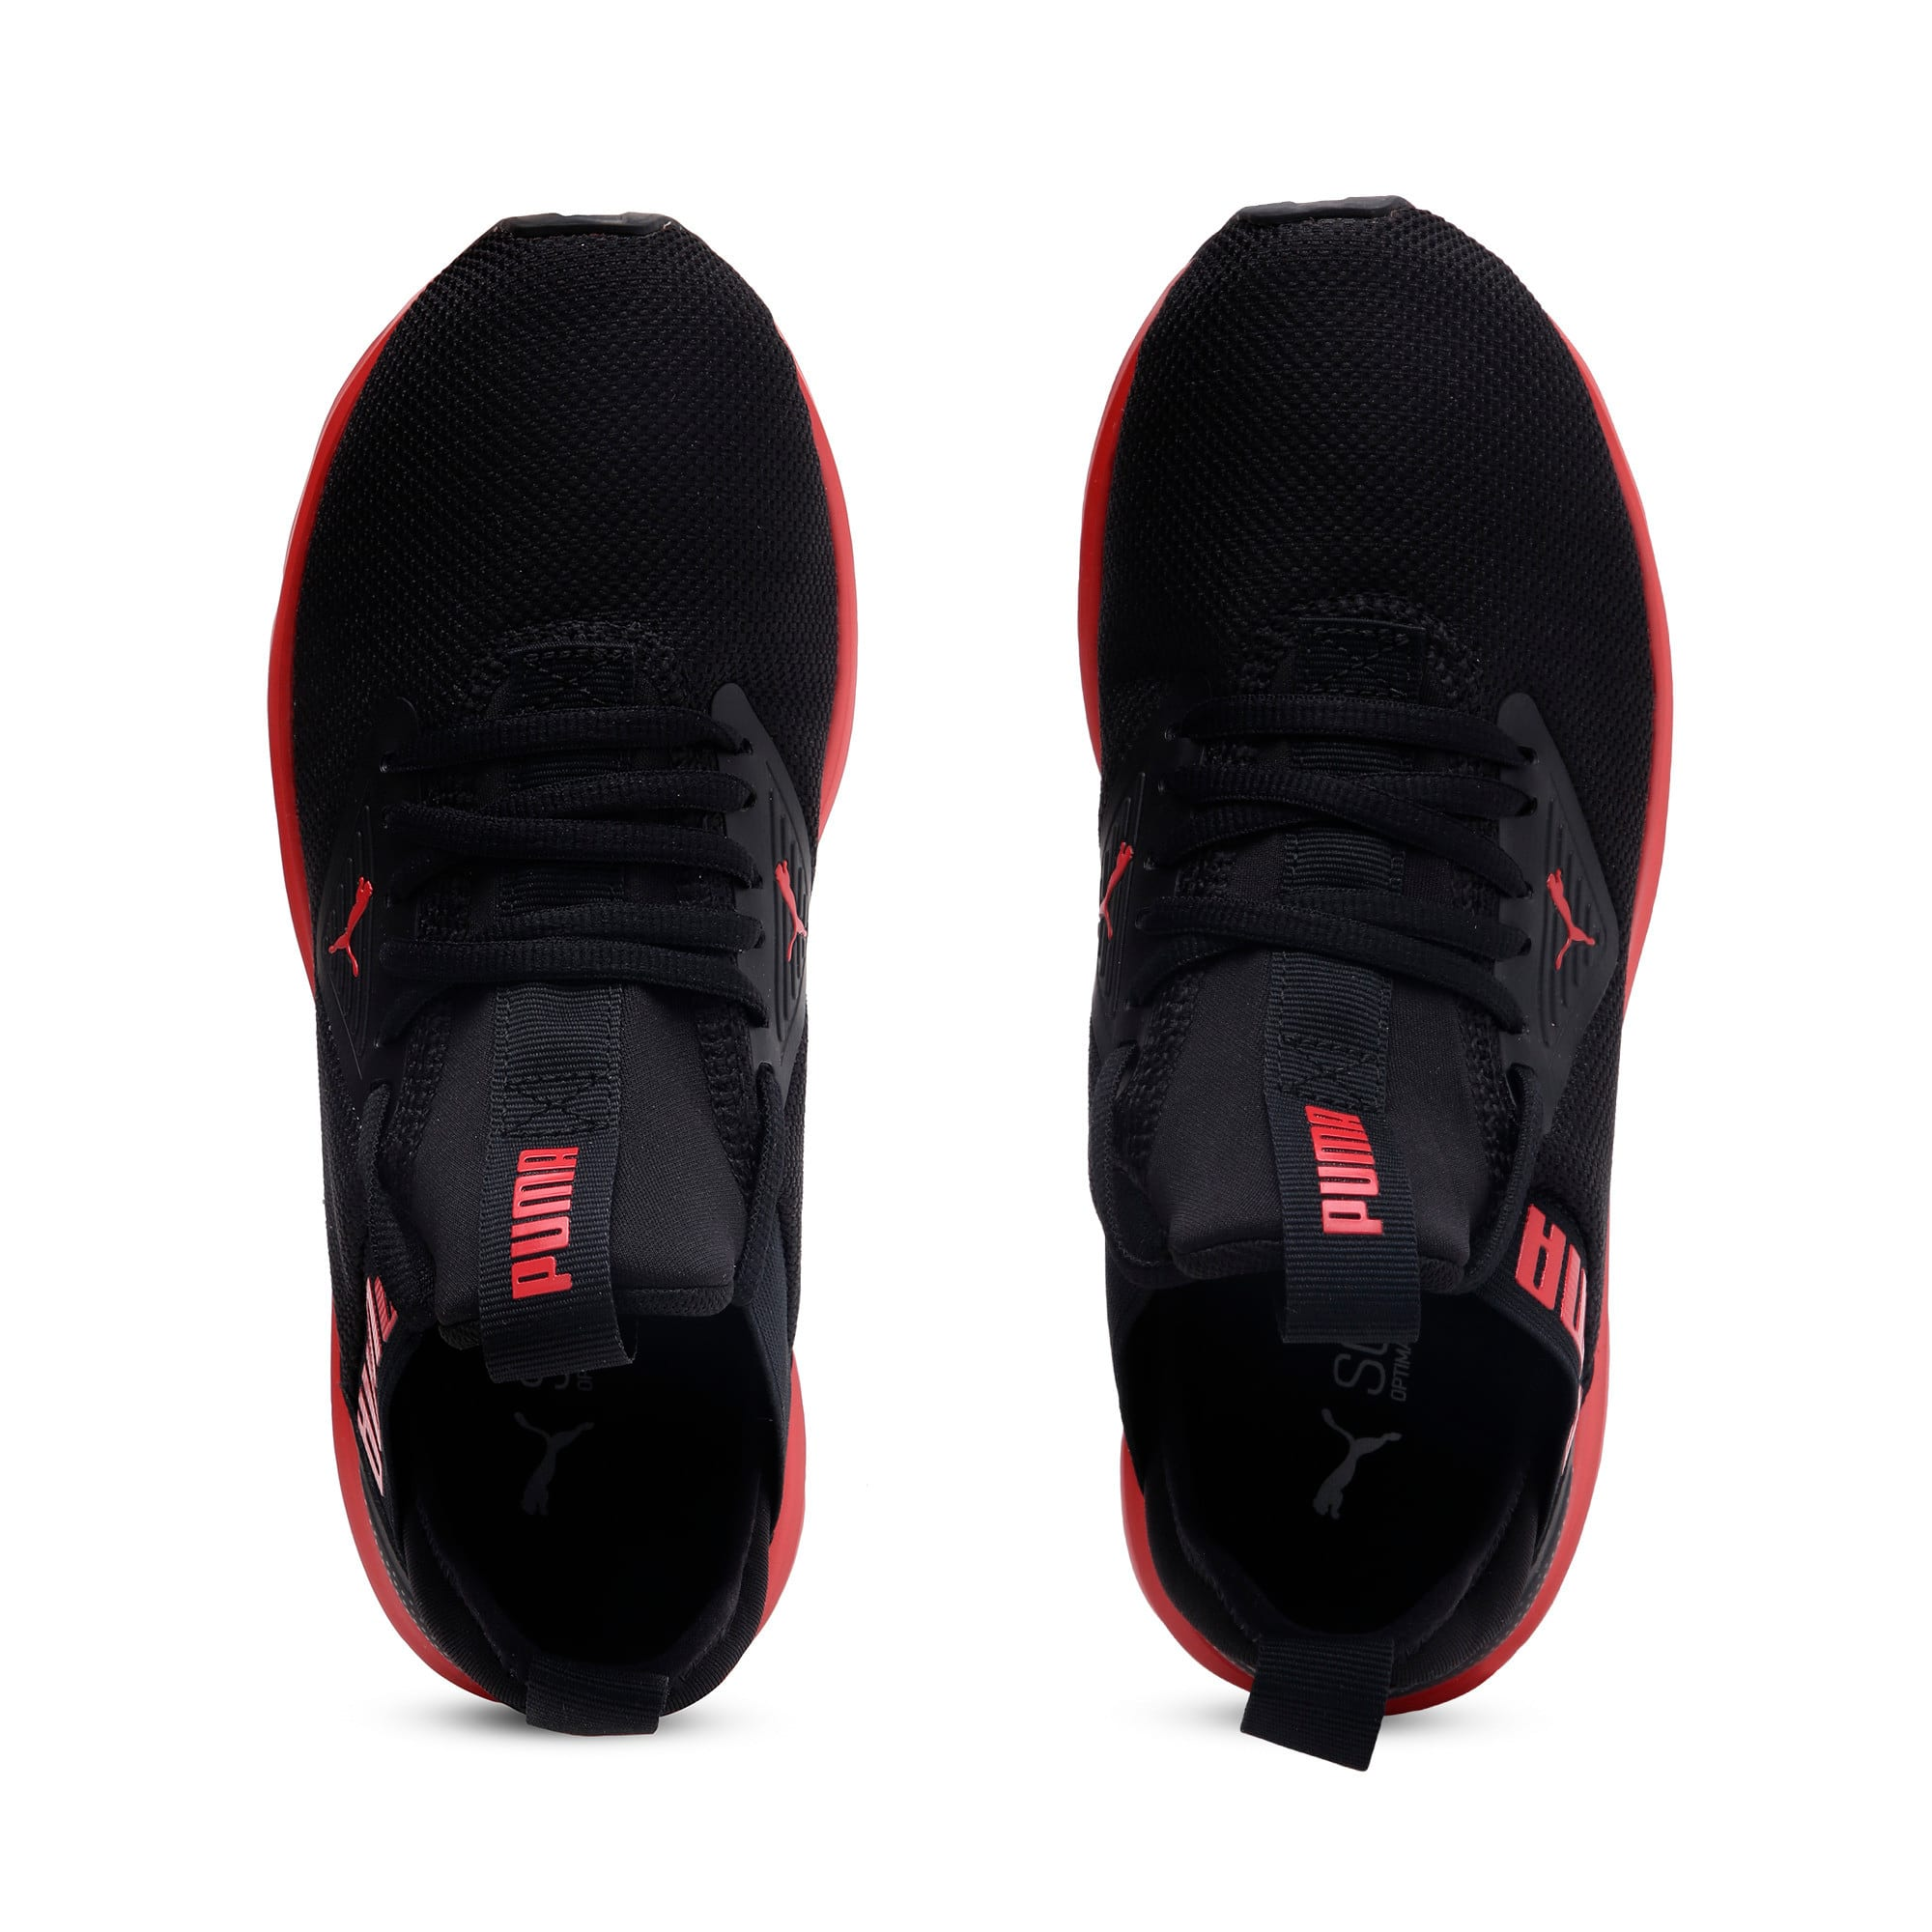 Thumbnail 6 of Enzo Beta SoftFoam Youth Trainers, Puma Black-High Risk Red, medium-IND